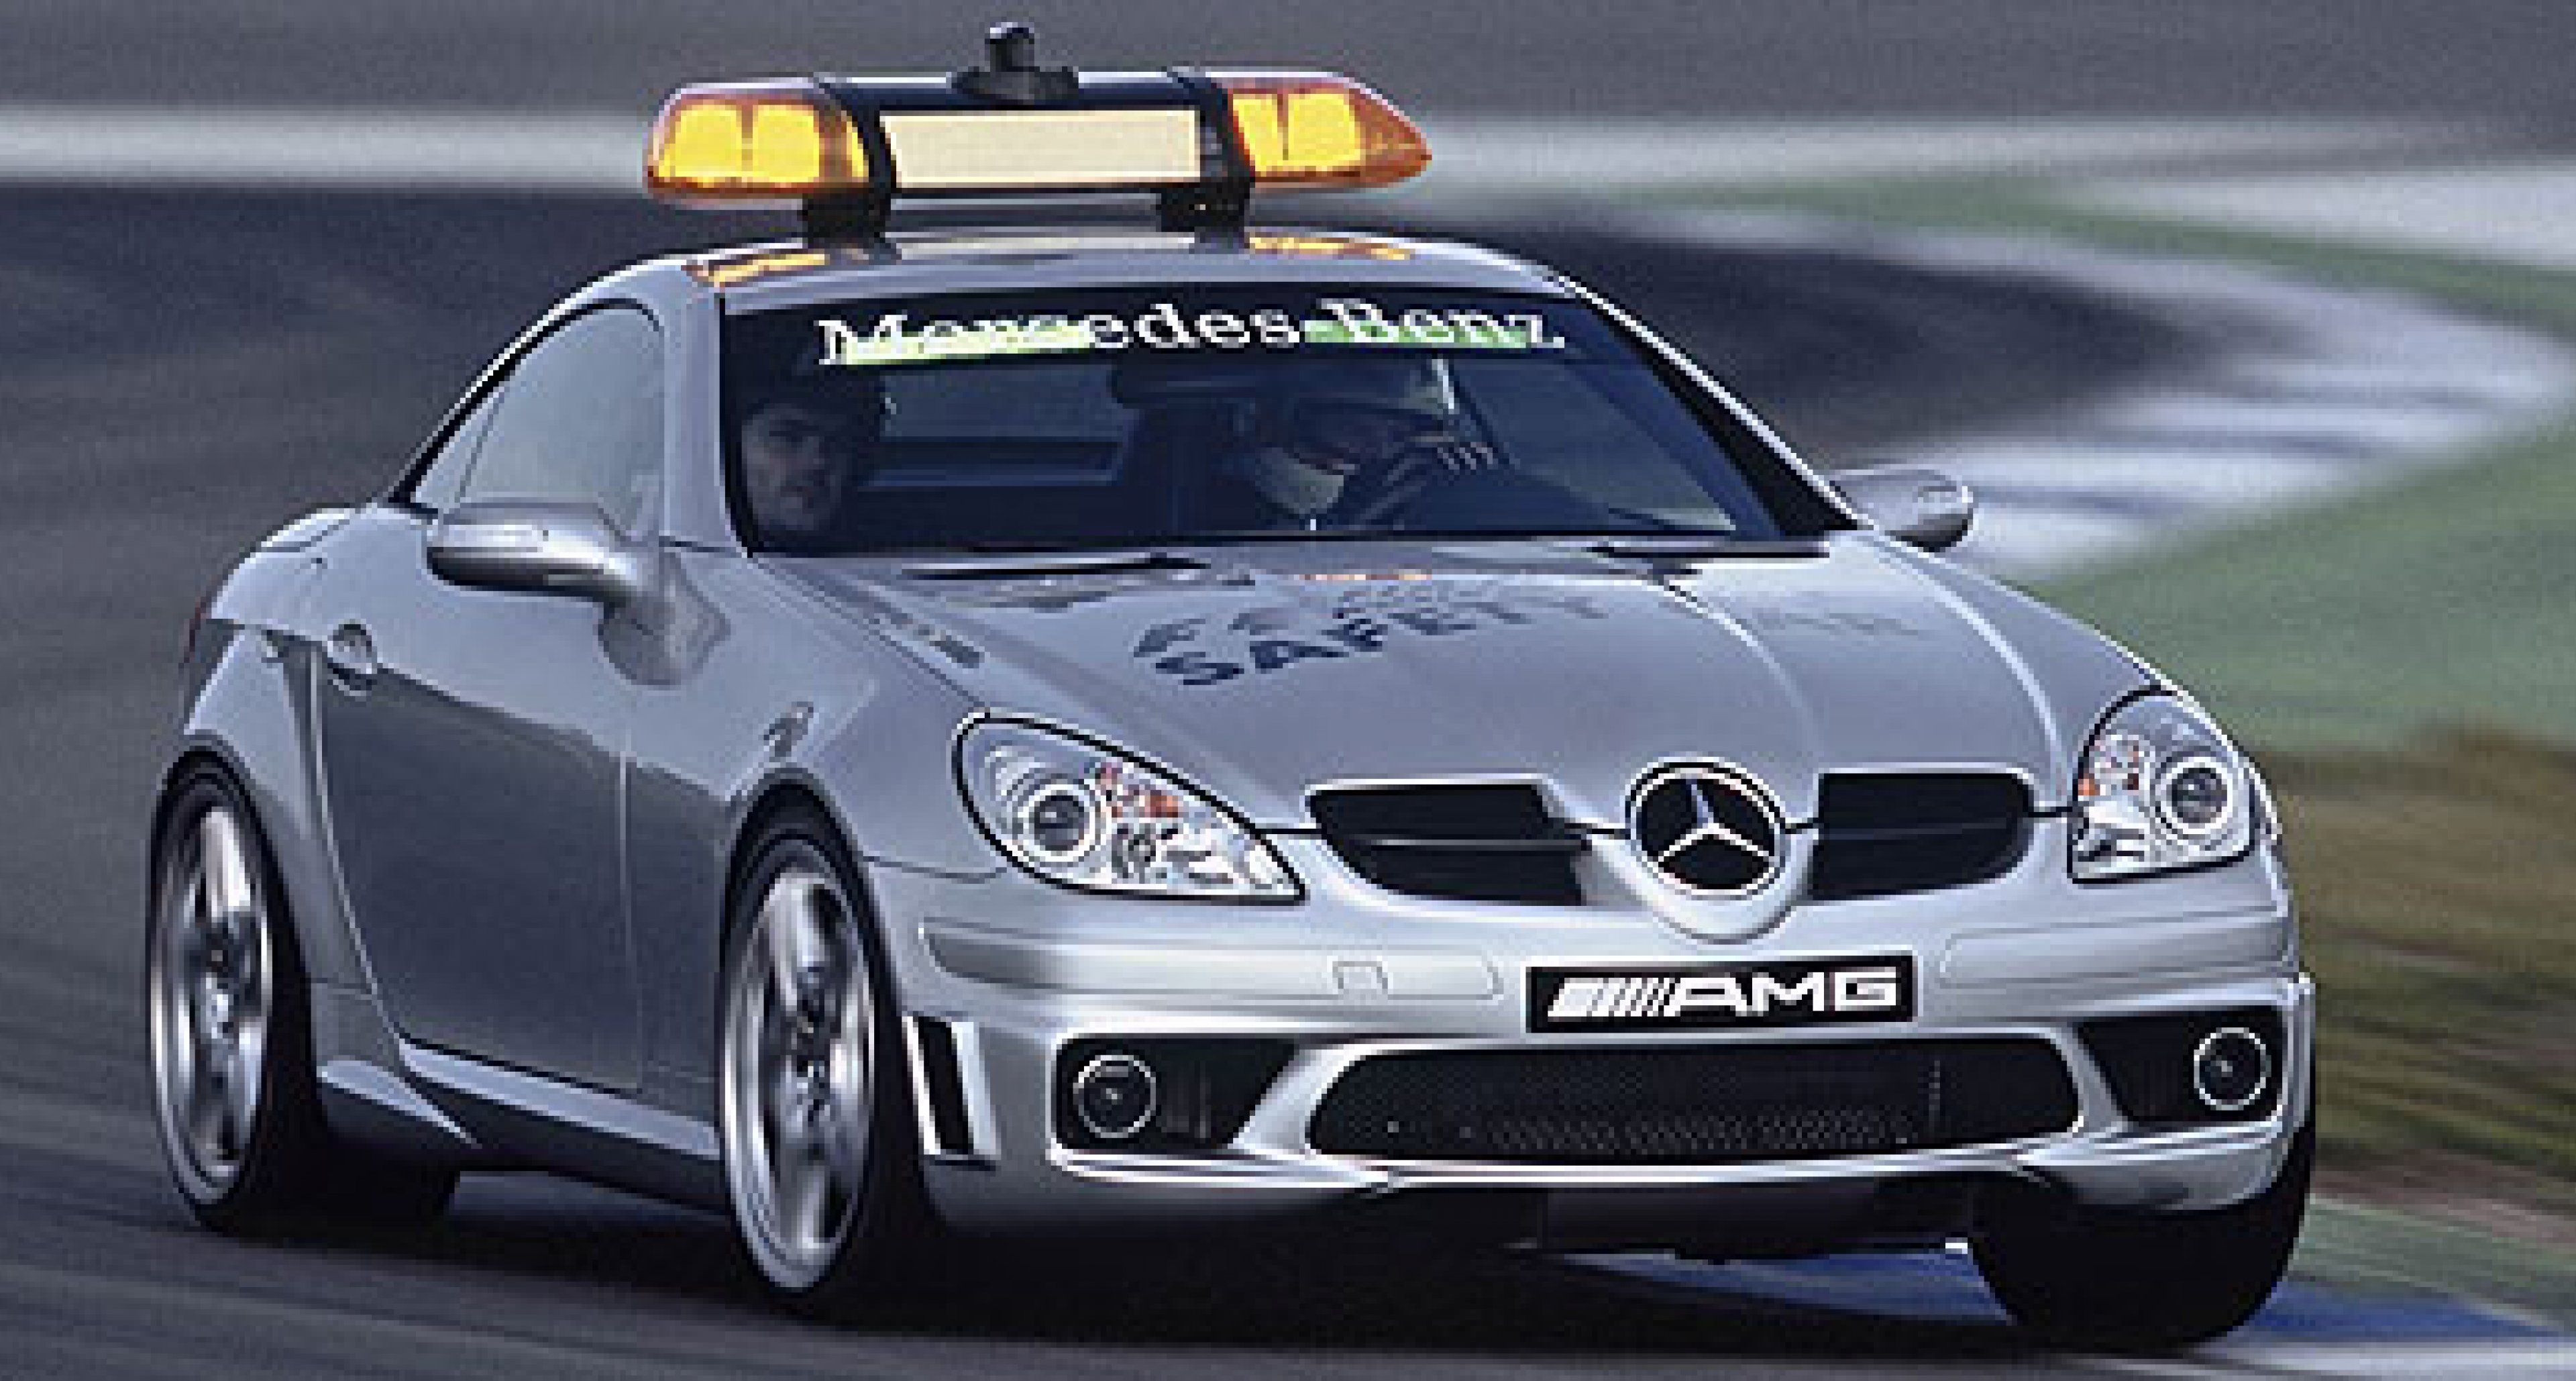 New AMG Mercedes safety car debuts at Melbourne